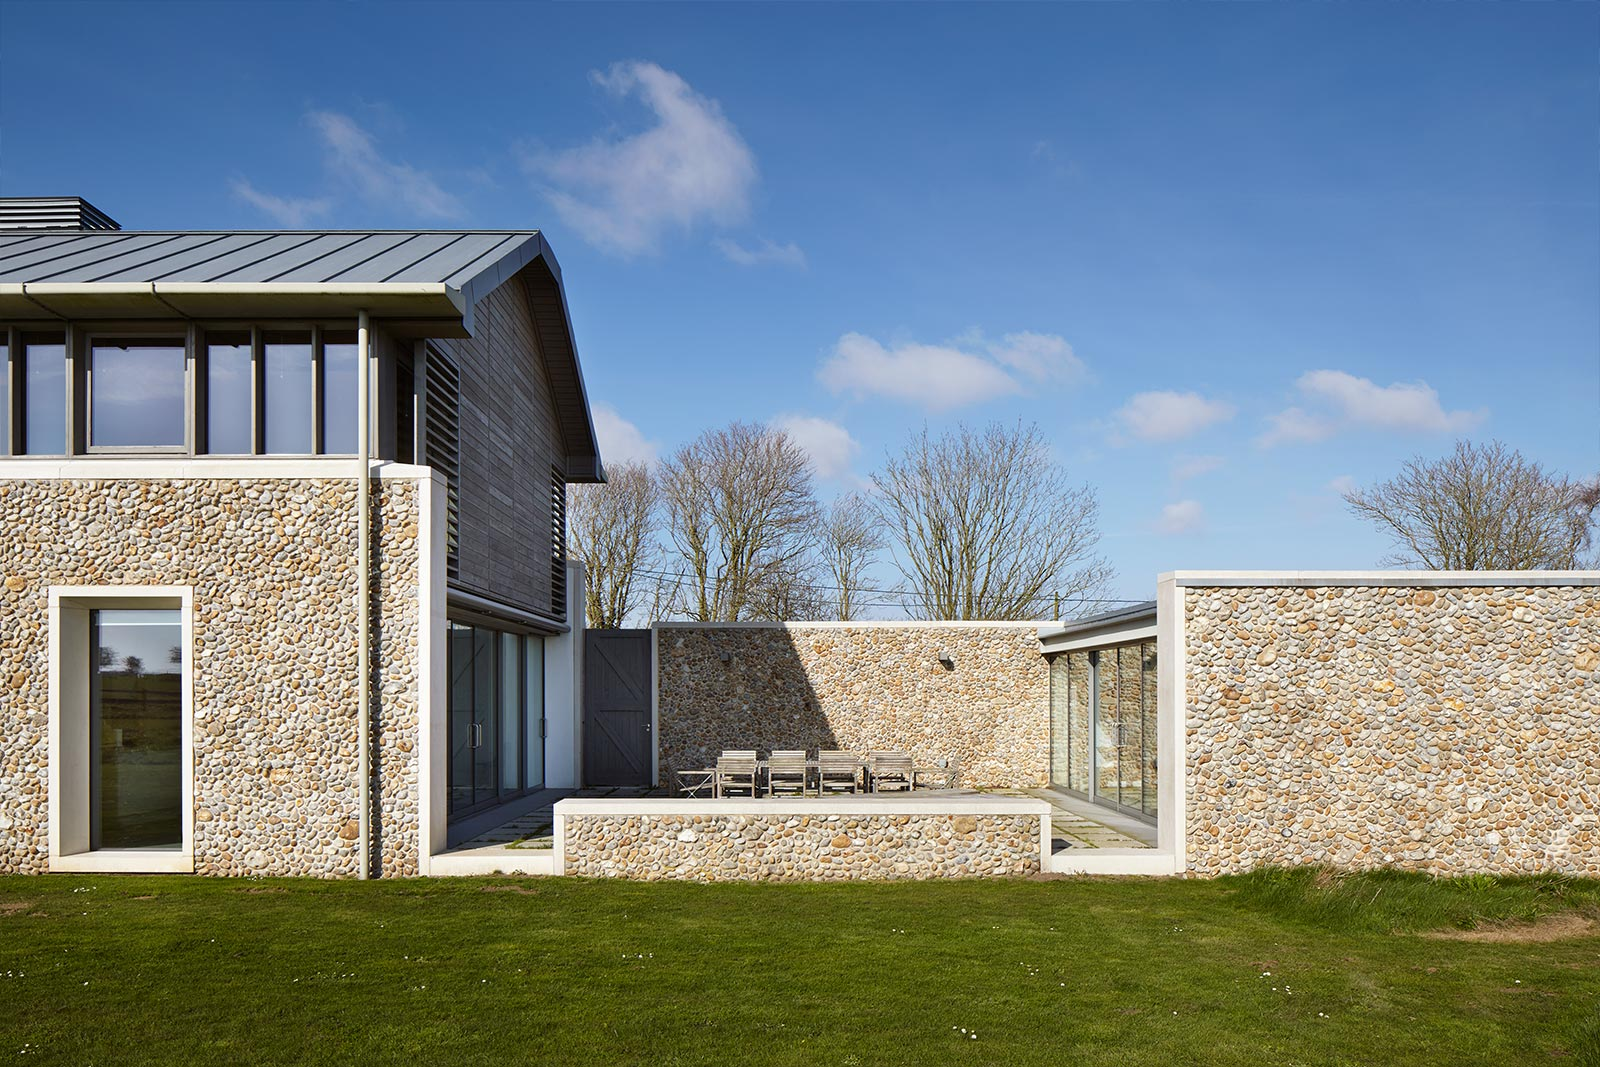 Give the gift of travel AND great design with a stay at a LIVING ARCHITECTURE holiday home. Founded in 2006, the U.K. company provides design enthusiasts with the chance to experience exceptional architecture and design by renting truly inspiring homes, like Long House pictured here. With rentals scattered across England, you'll be spoiled for choice. This just might be a gift you have to give yourself.